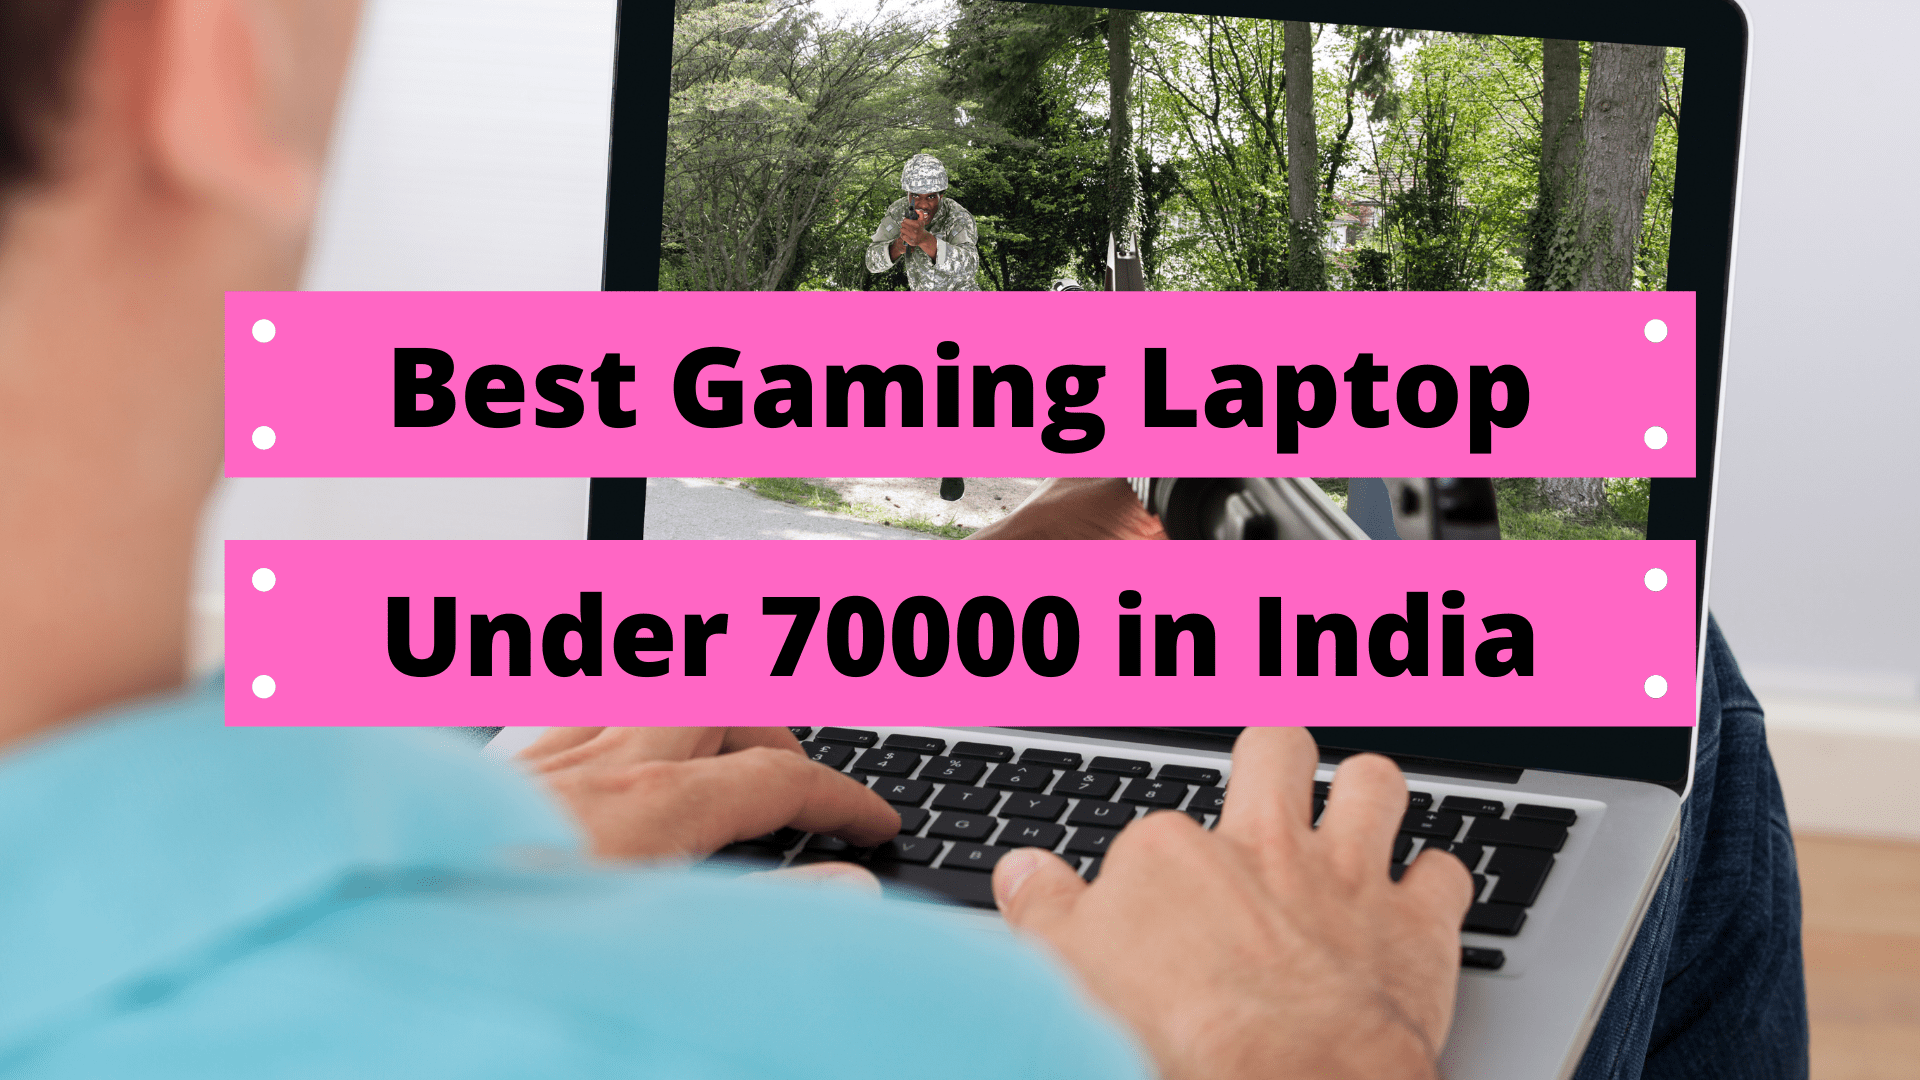 9 Best Gaming Laptop Under 70000 in India (2020)